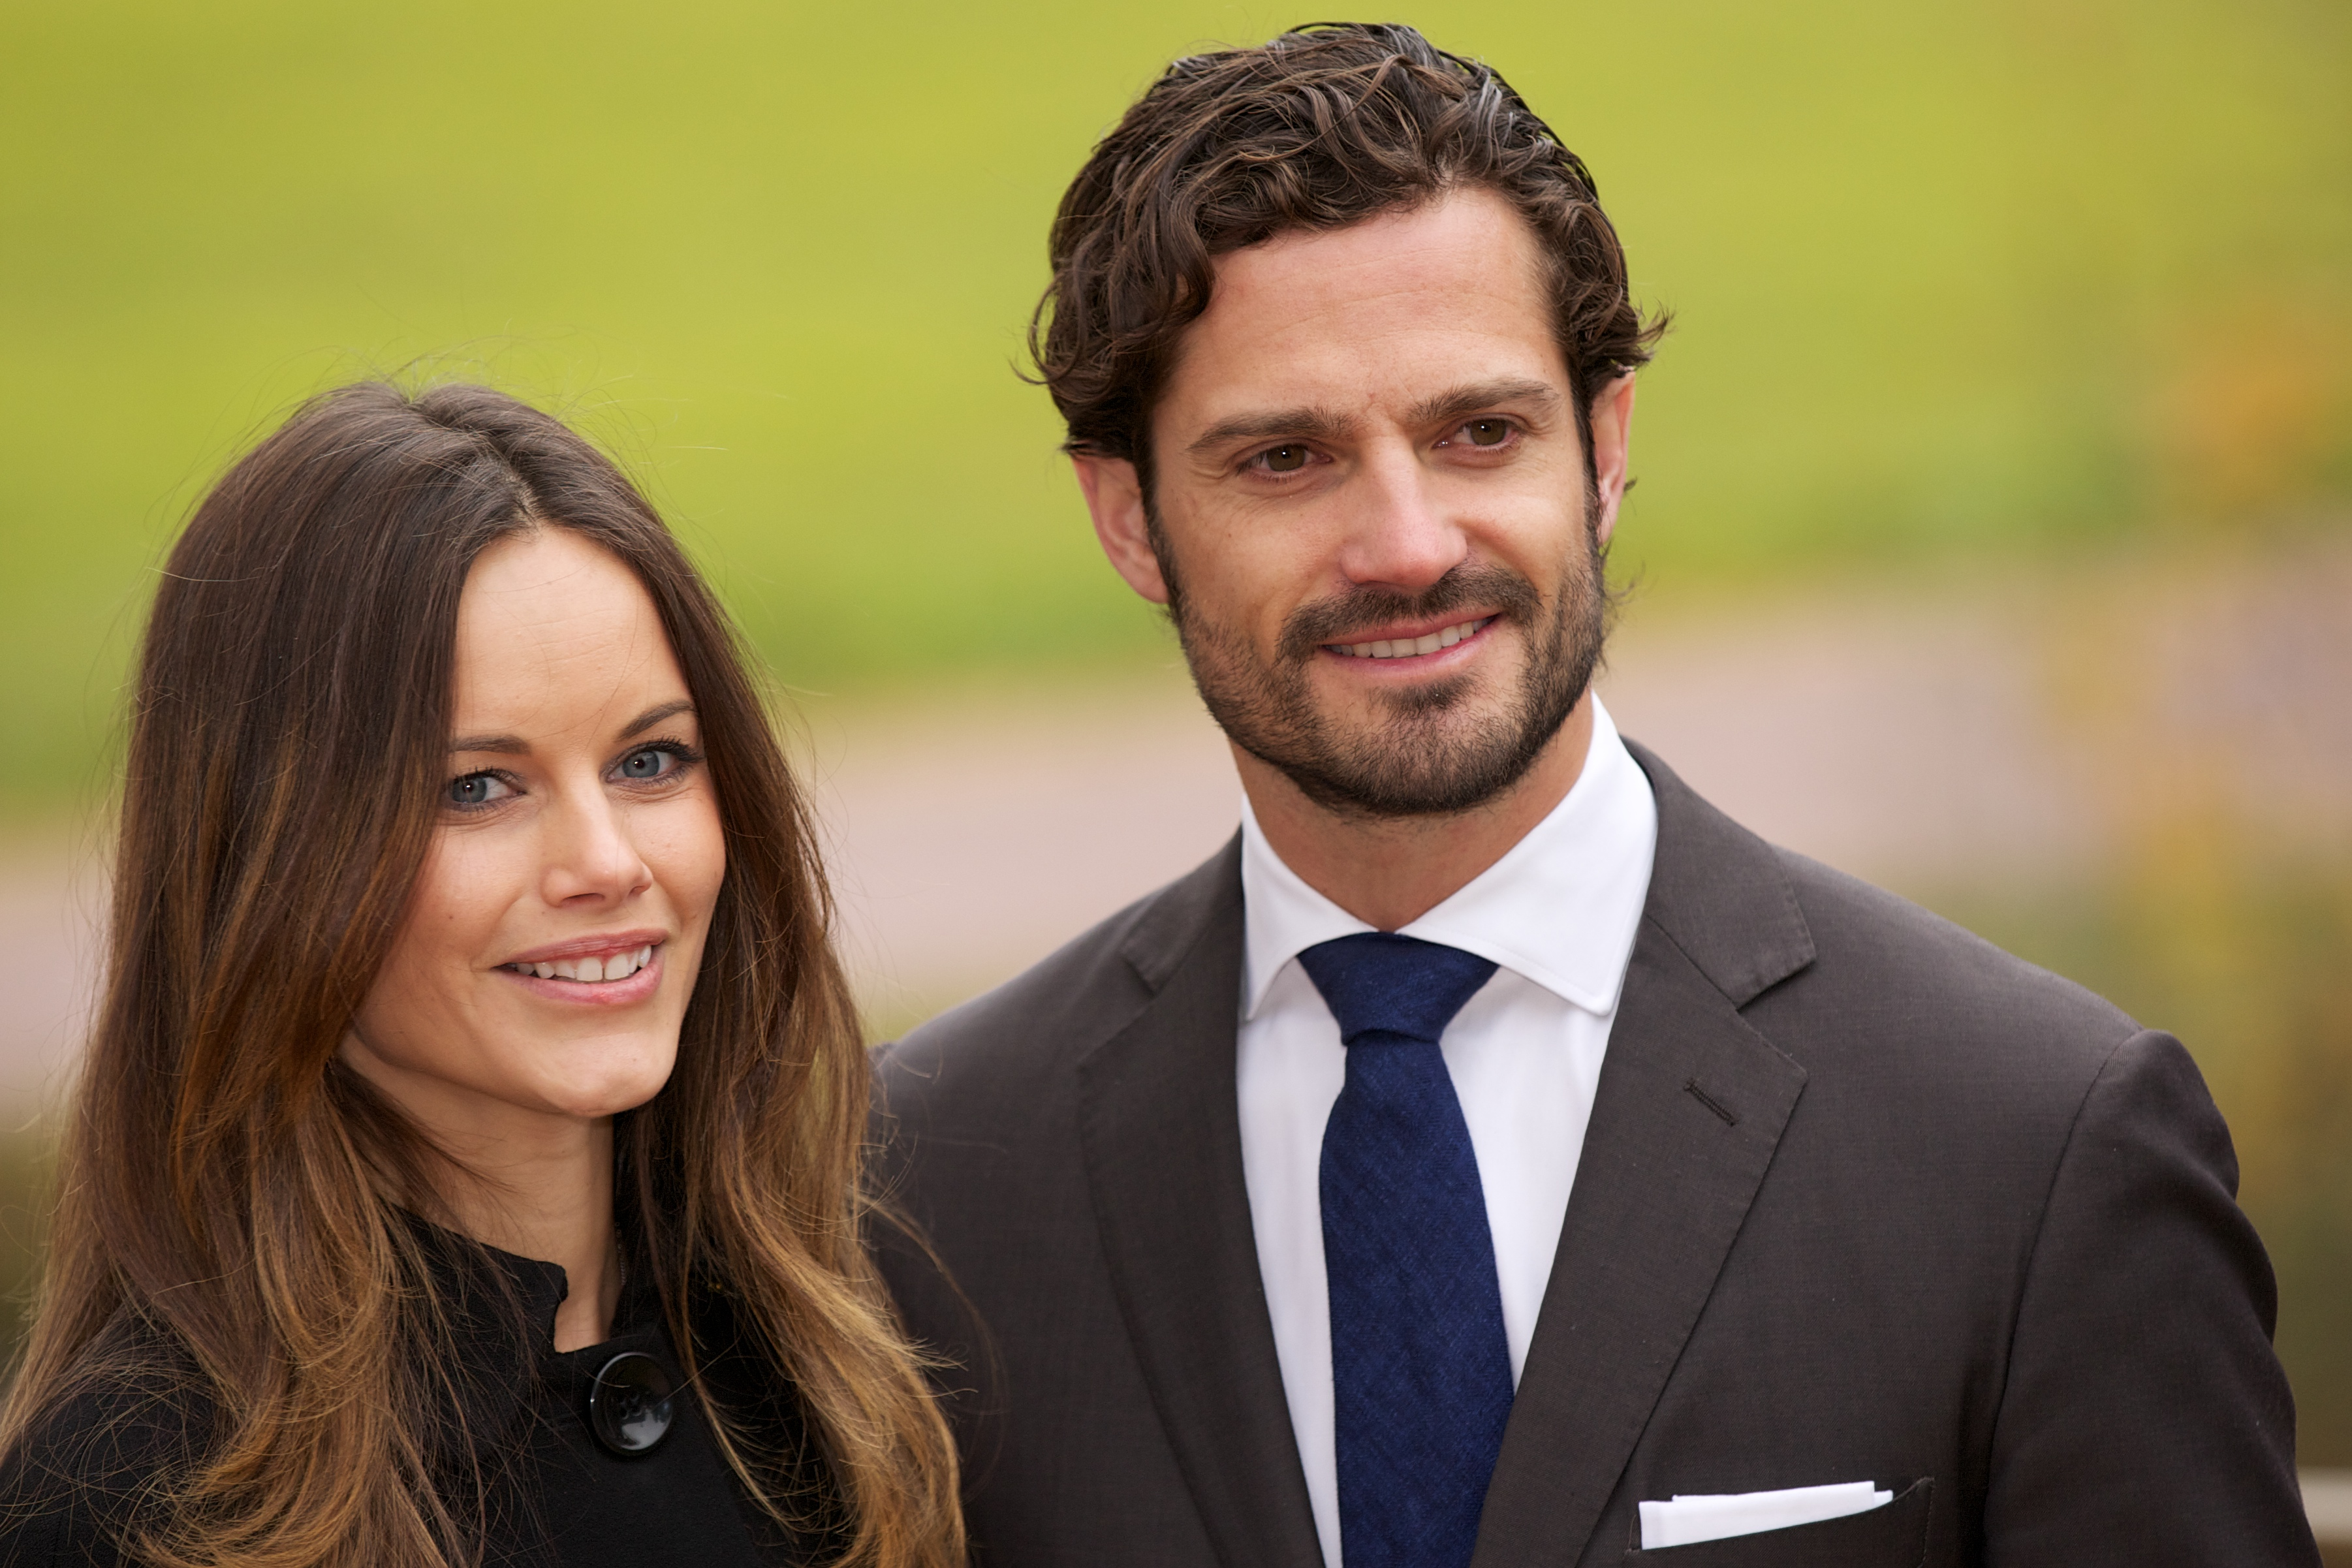 Princess Sofia And Prince Carl Philip Of Sweden Release